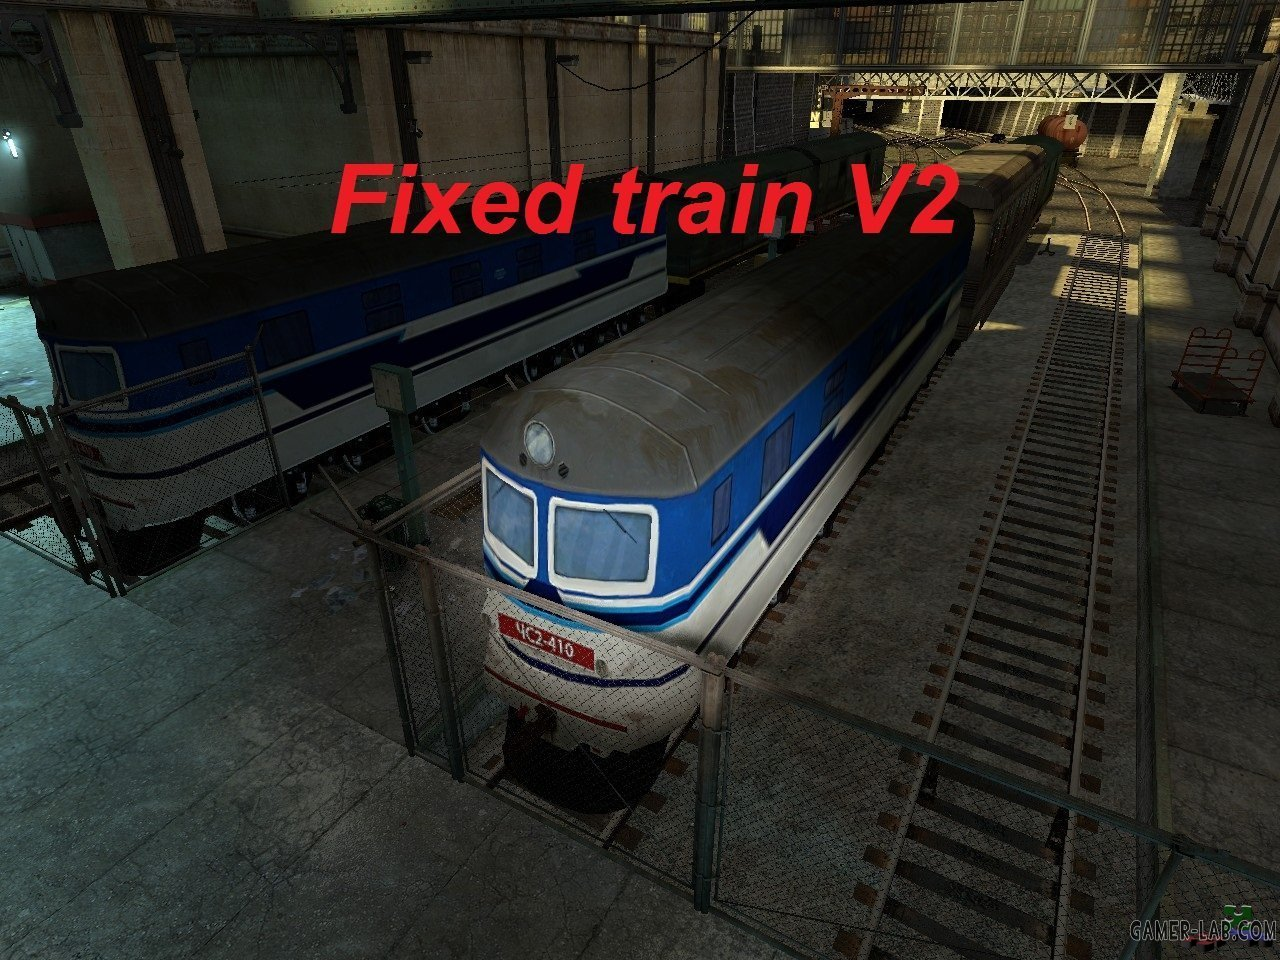 Fixed train v2